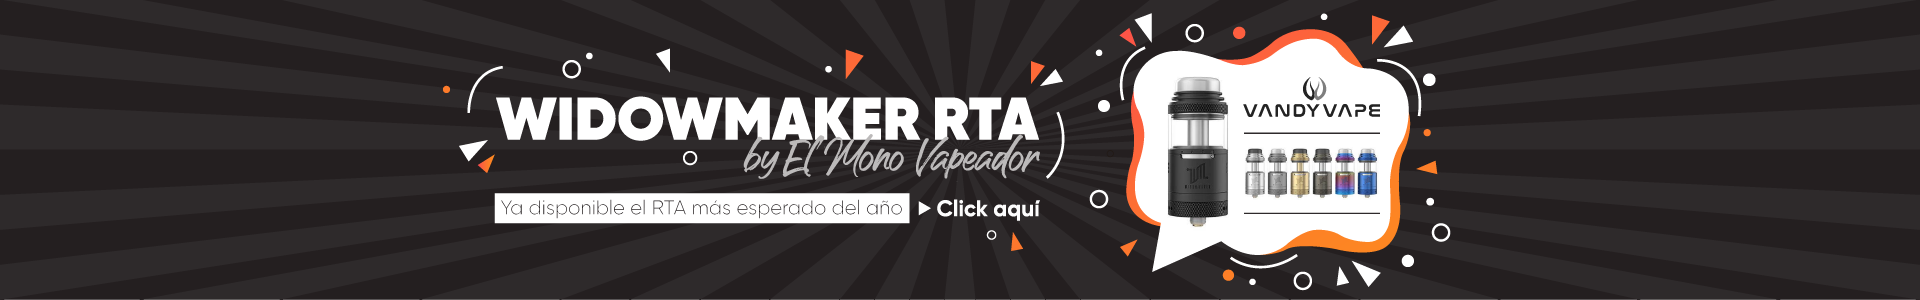 Comprar Widowmaker RTA